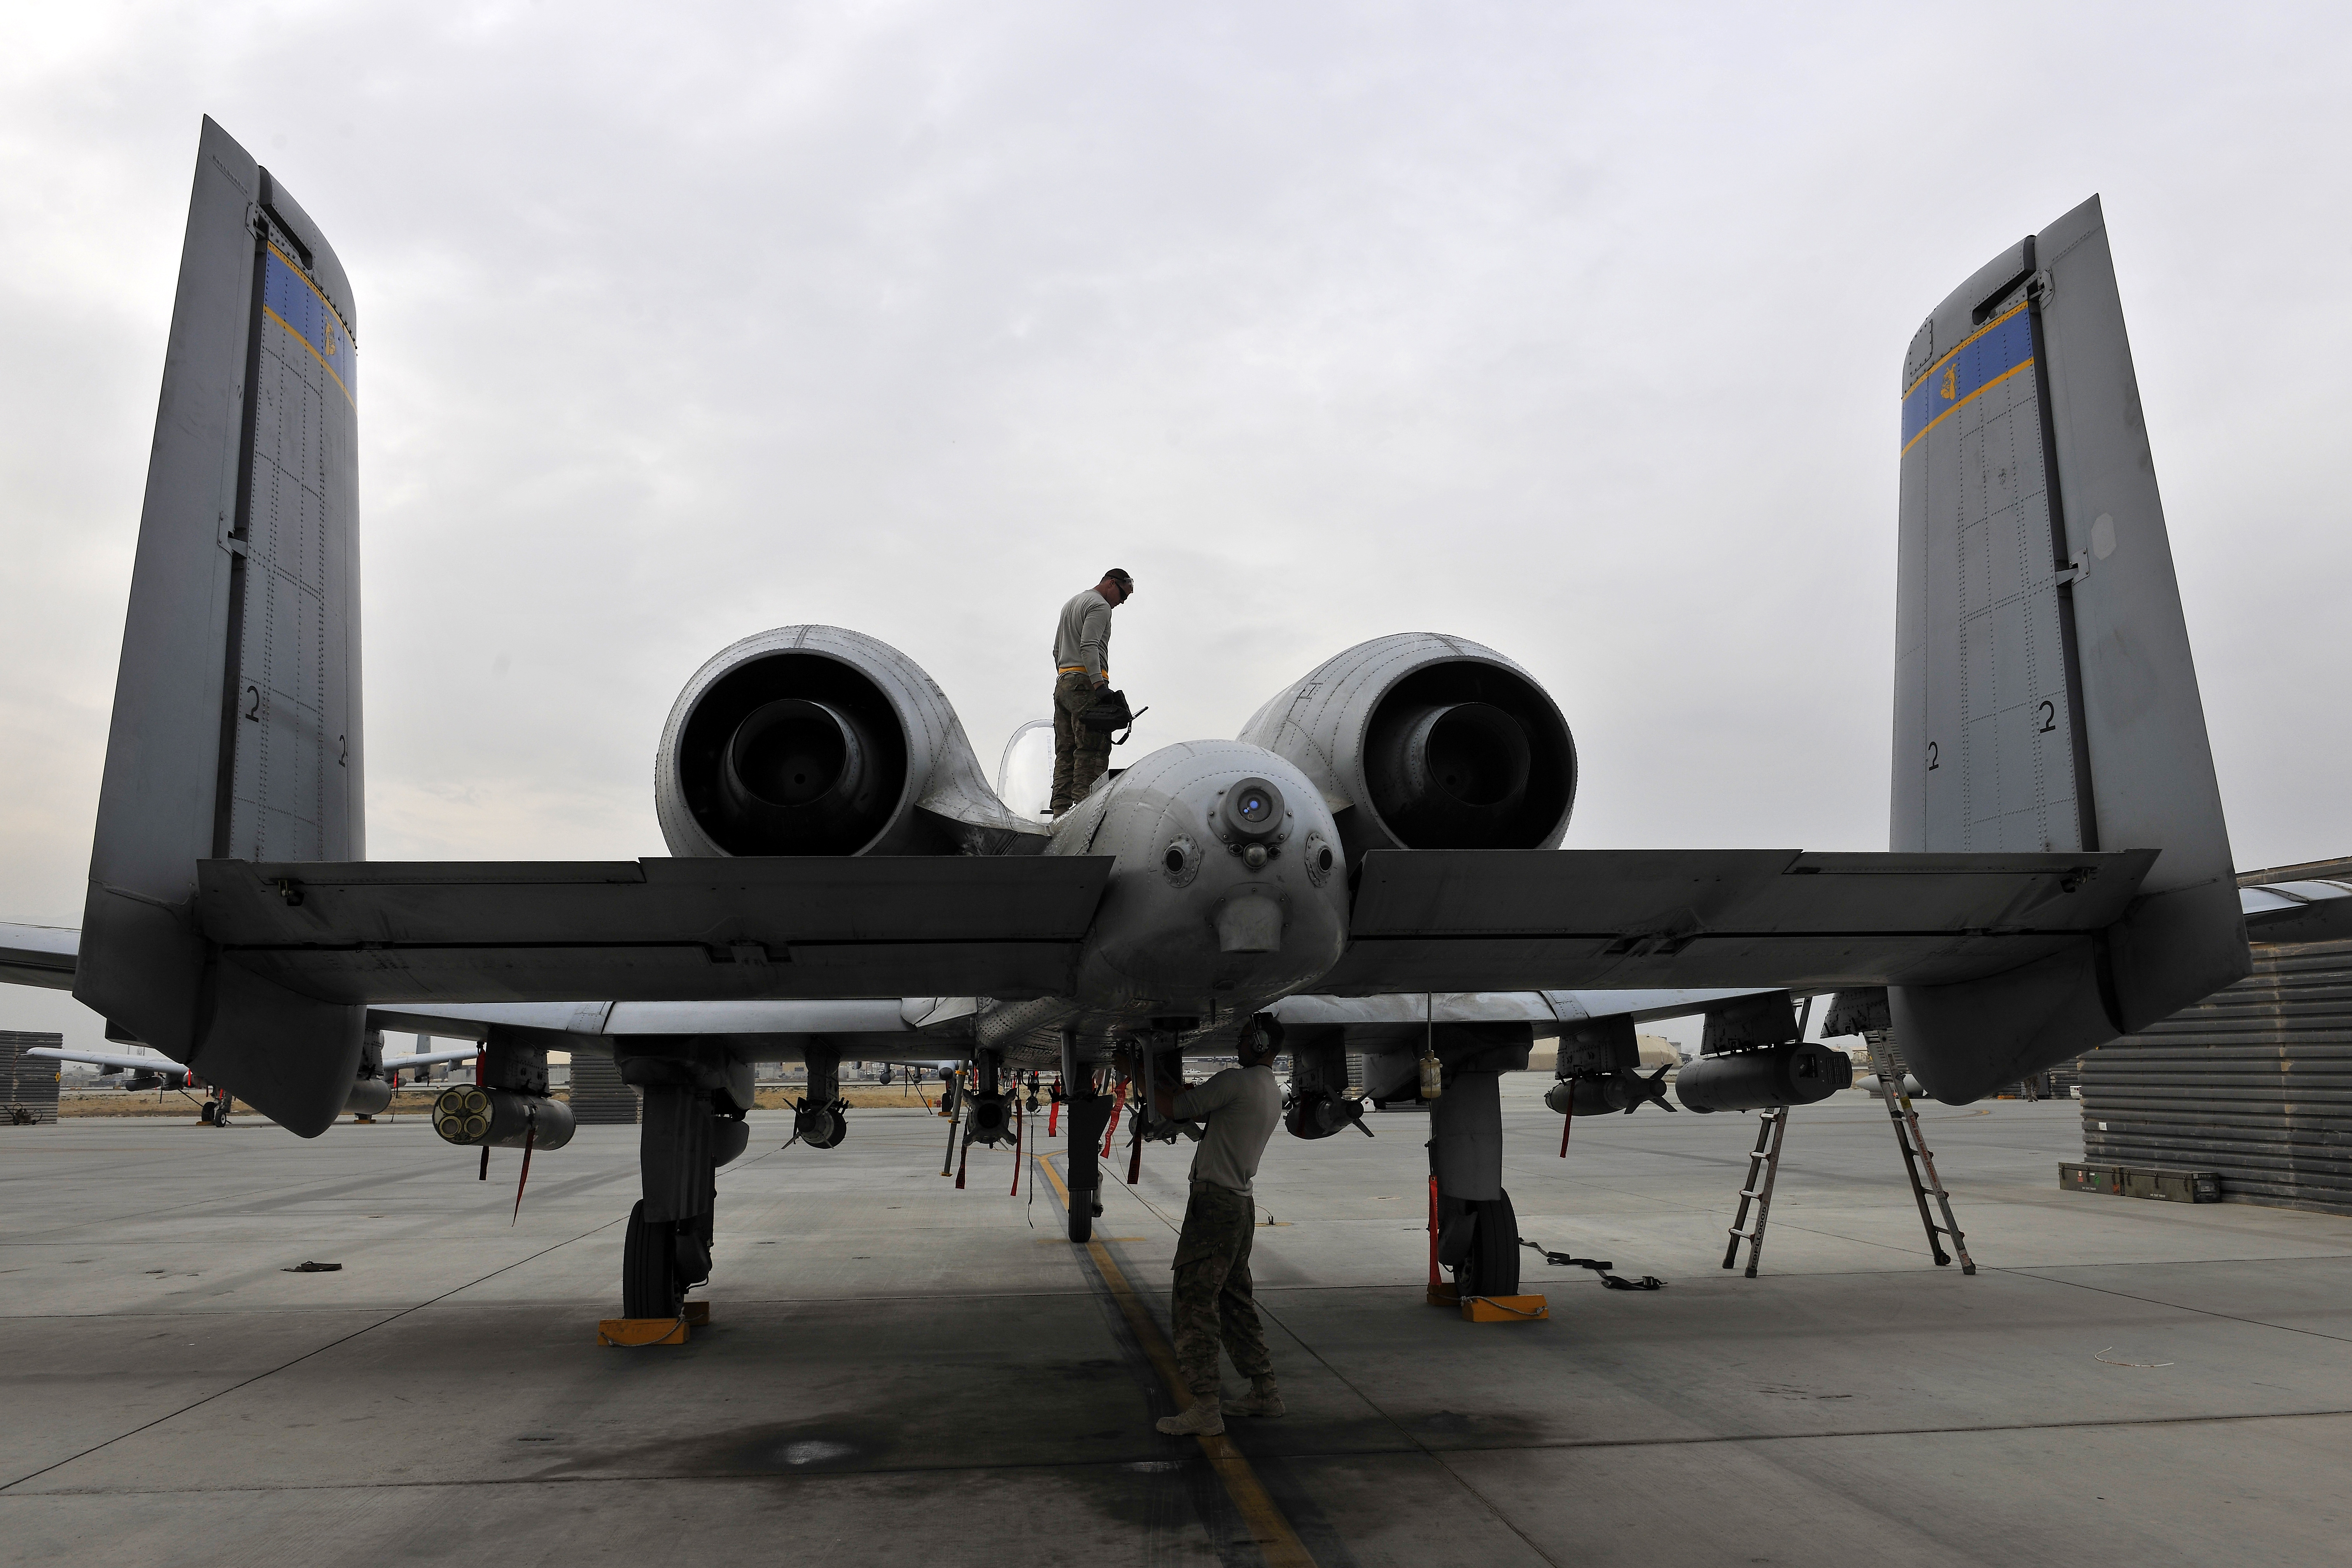 A-10 at Davis Montham AFB